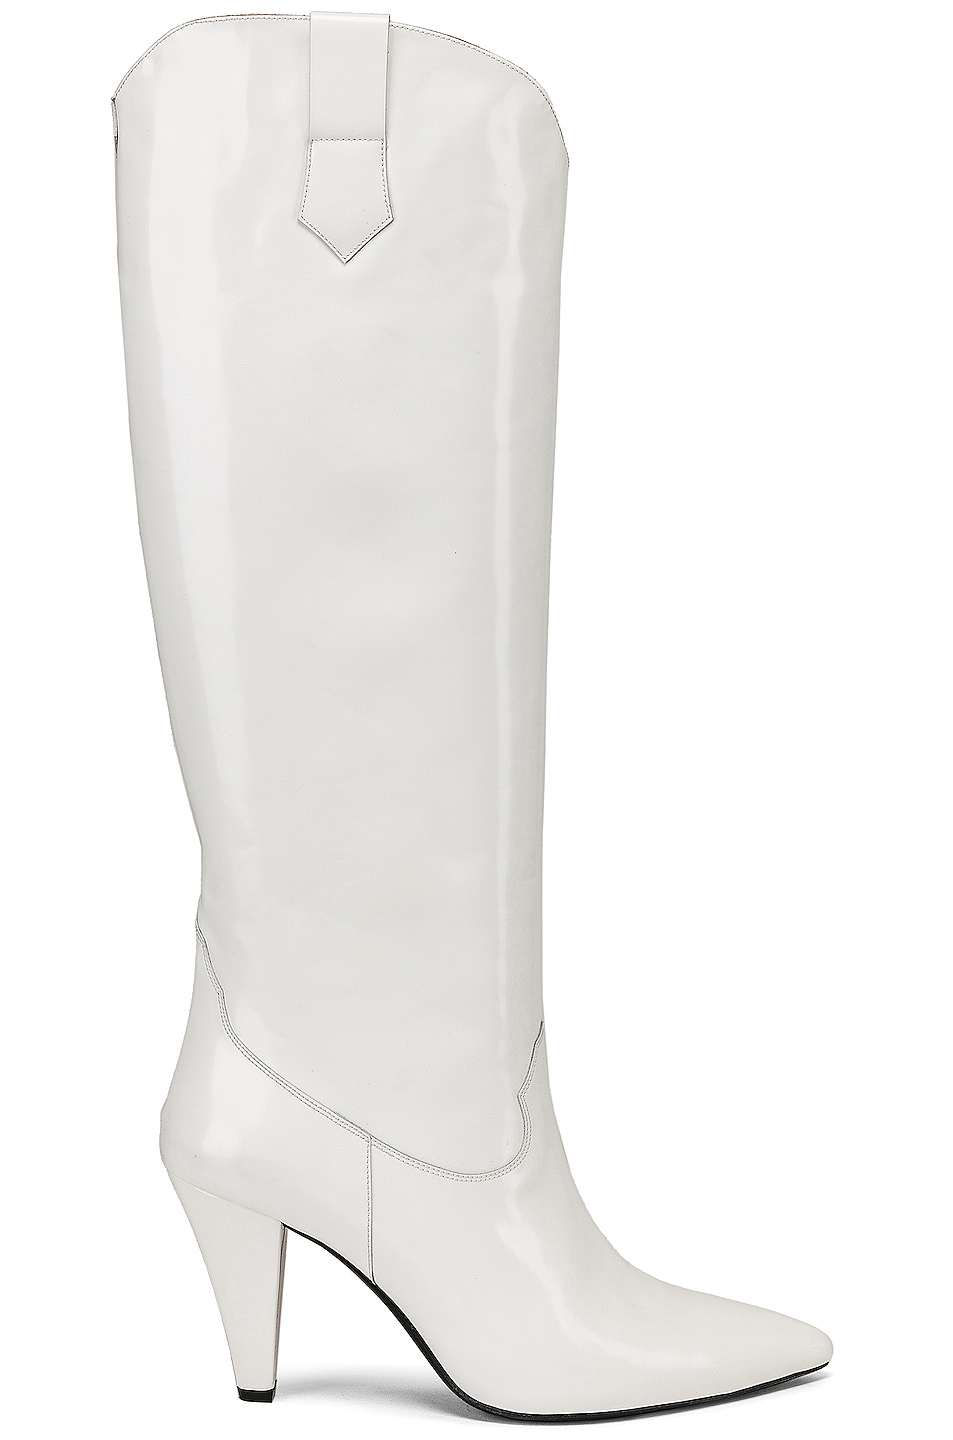 Image 1 of Zeynep Arcay Patent Leather Knee High Boots in White